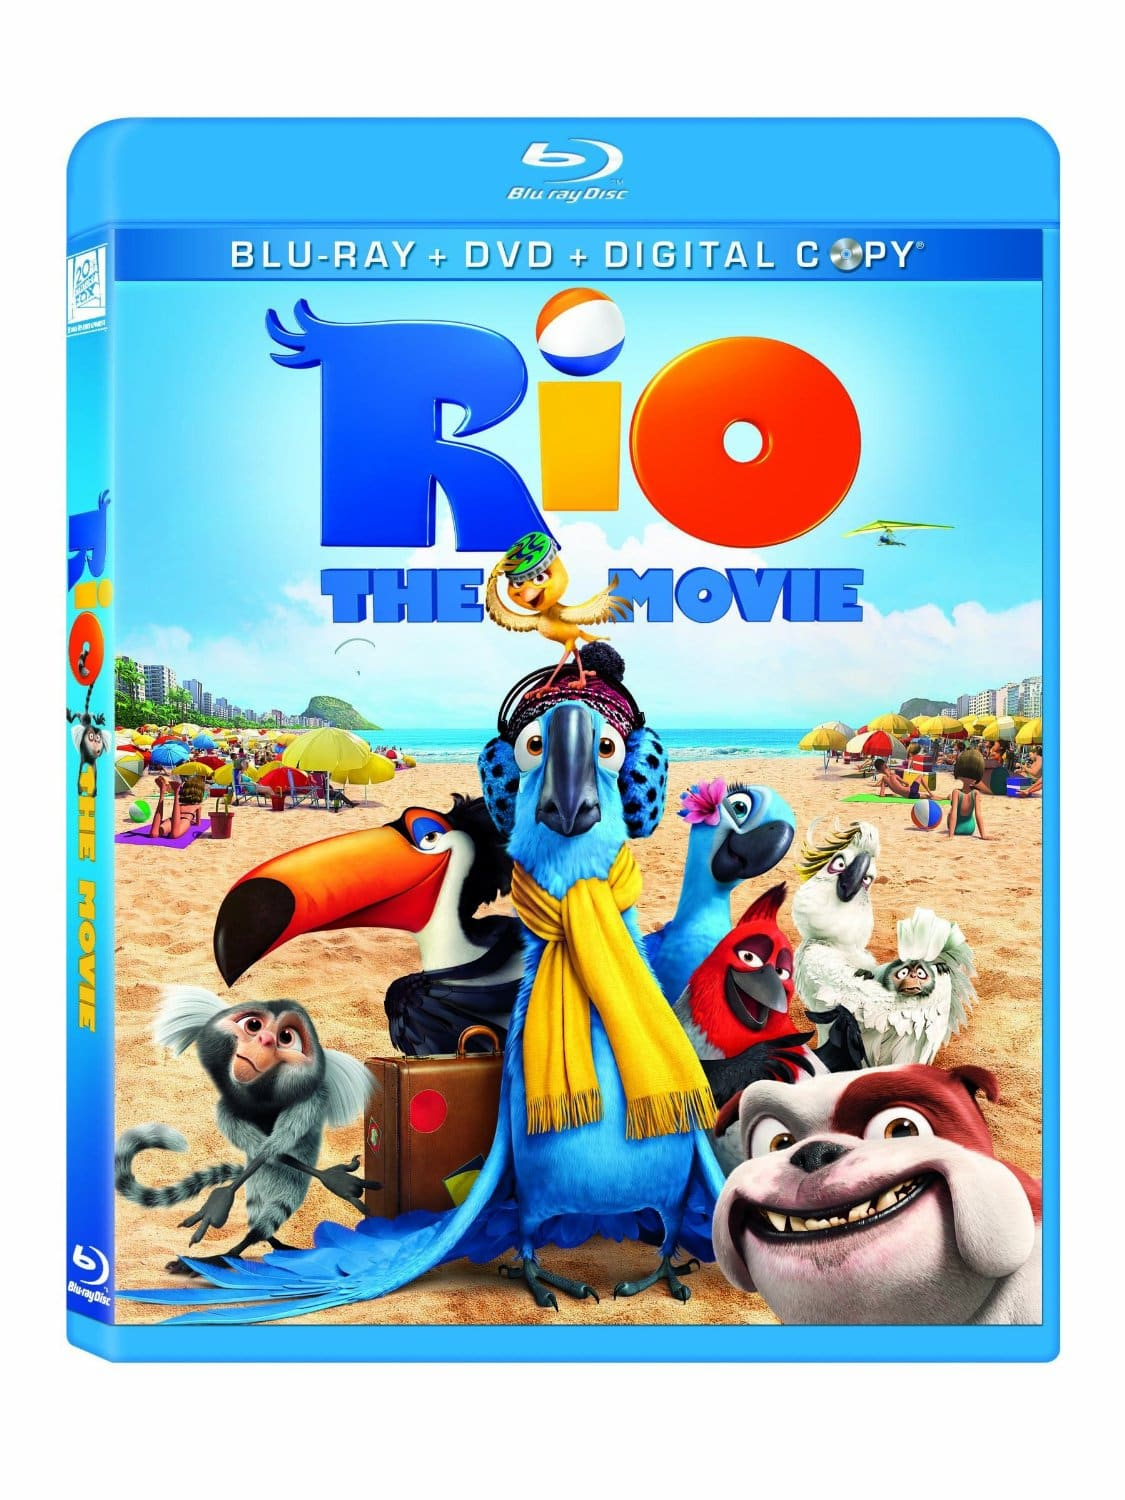 Blu-ray Sale: Life of Pi, Alien, Office Space, Rio, Mr & Mrs Smith, We Bought a Zoo & More  $5 each + Free Store Pickup